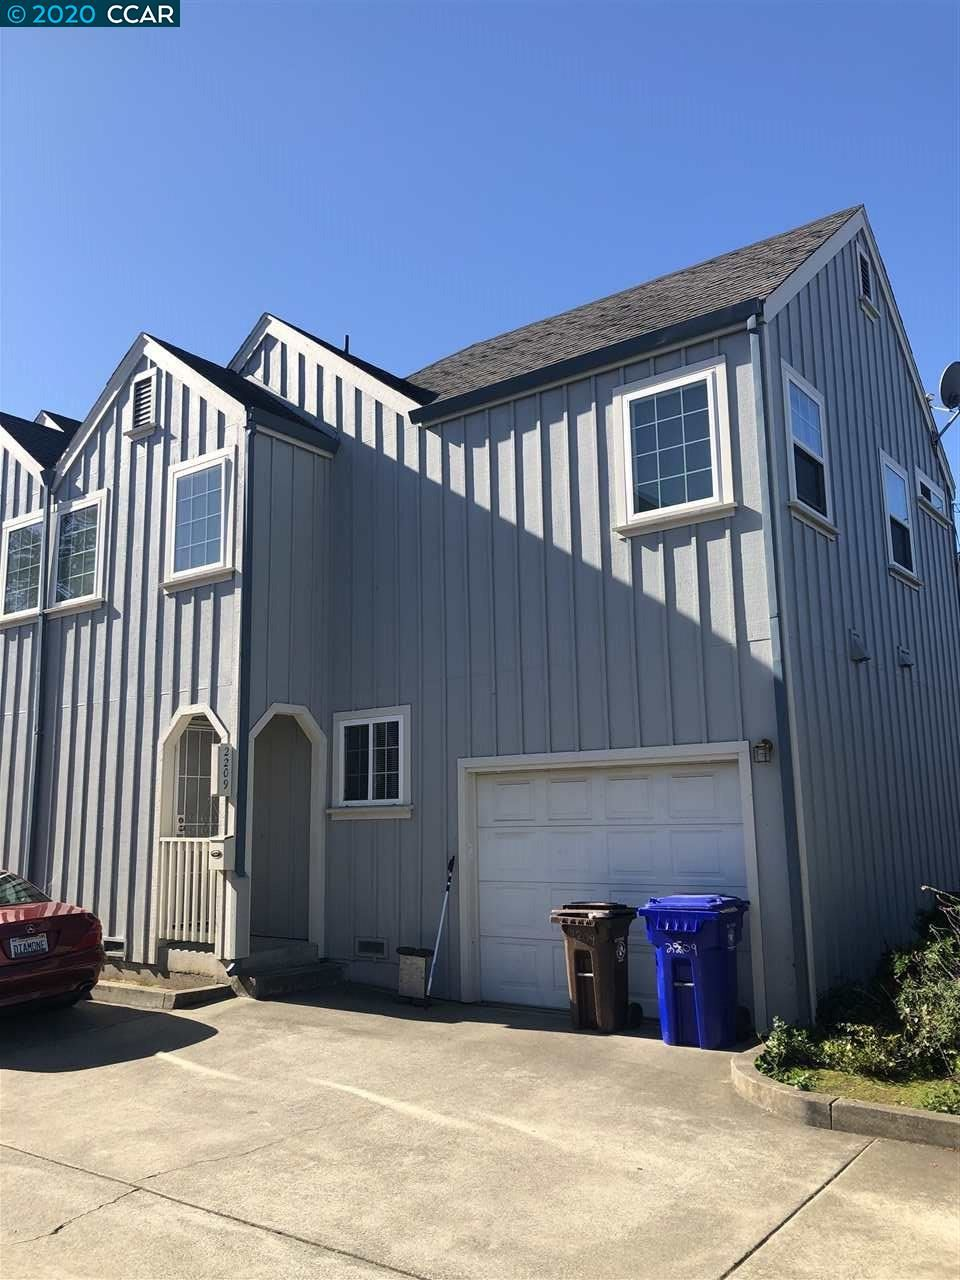 Photo of 2209 Prune St #2209 Prune, PINOLE, CA 94564 (MLS # 40897569)